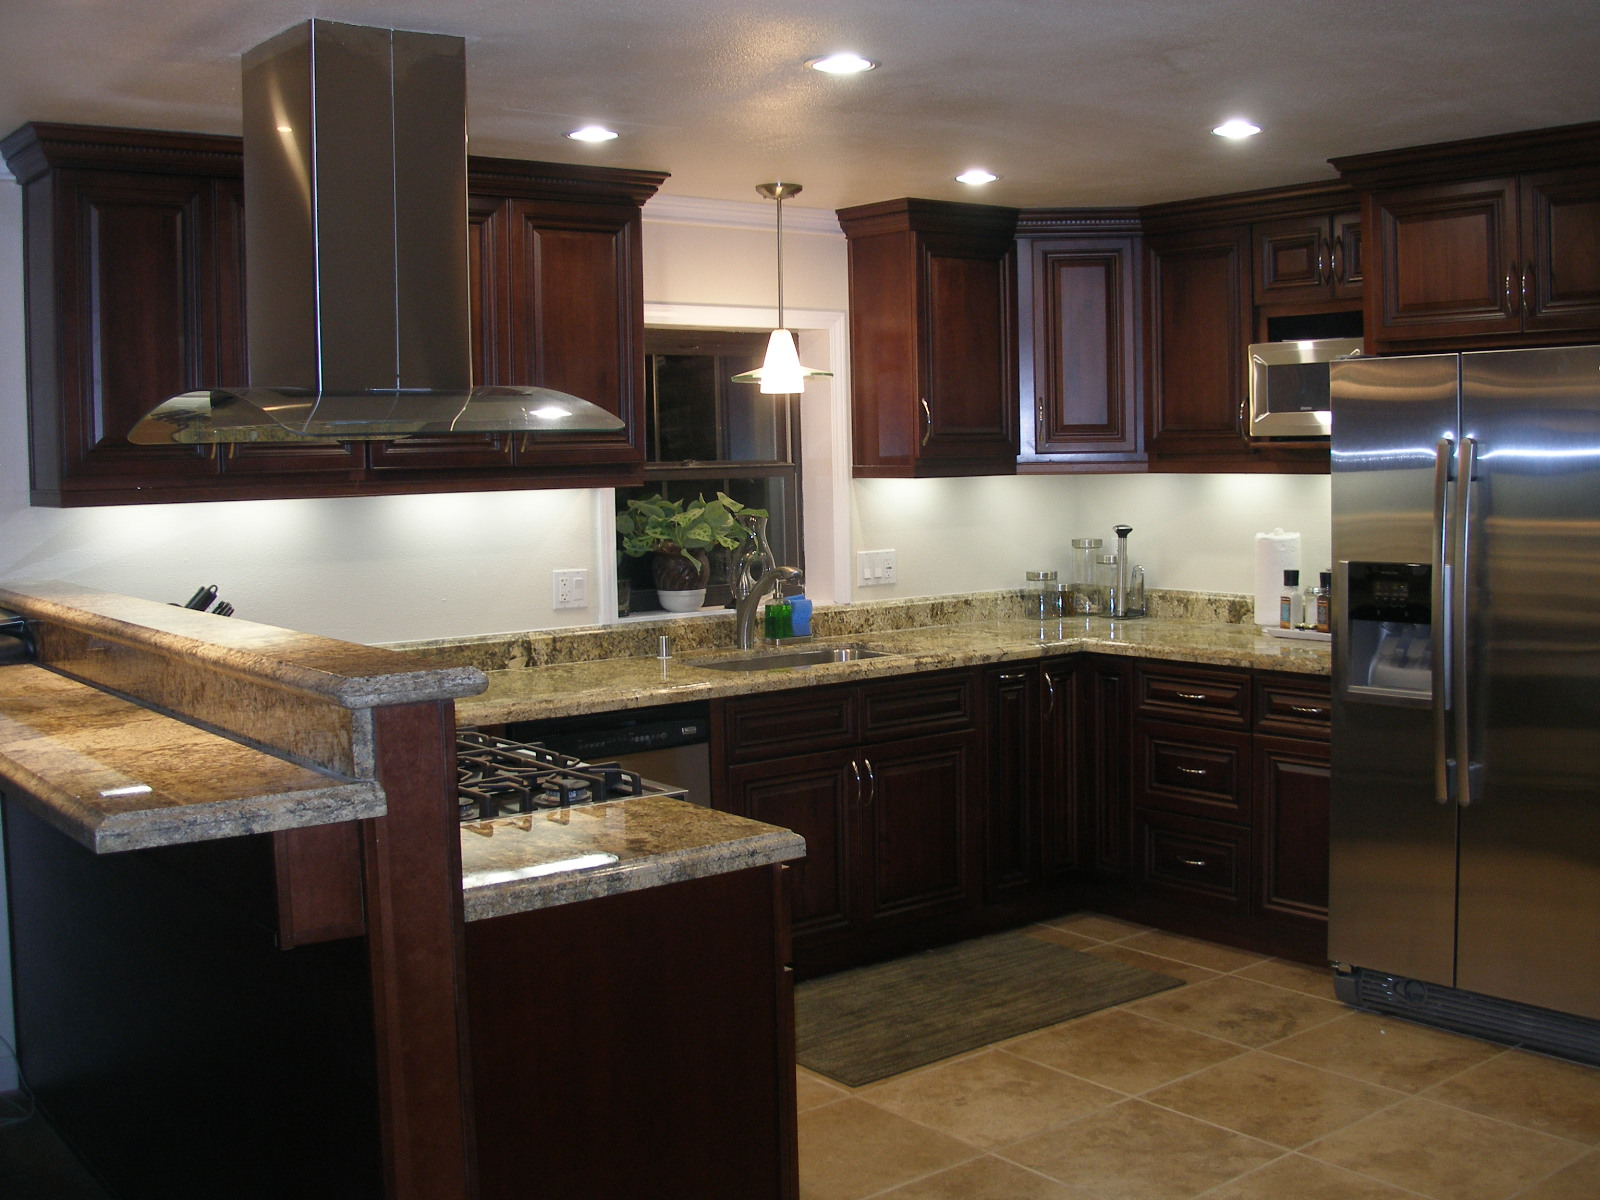 Image gallery kitchen redesign for How to redo your kitchen